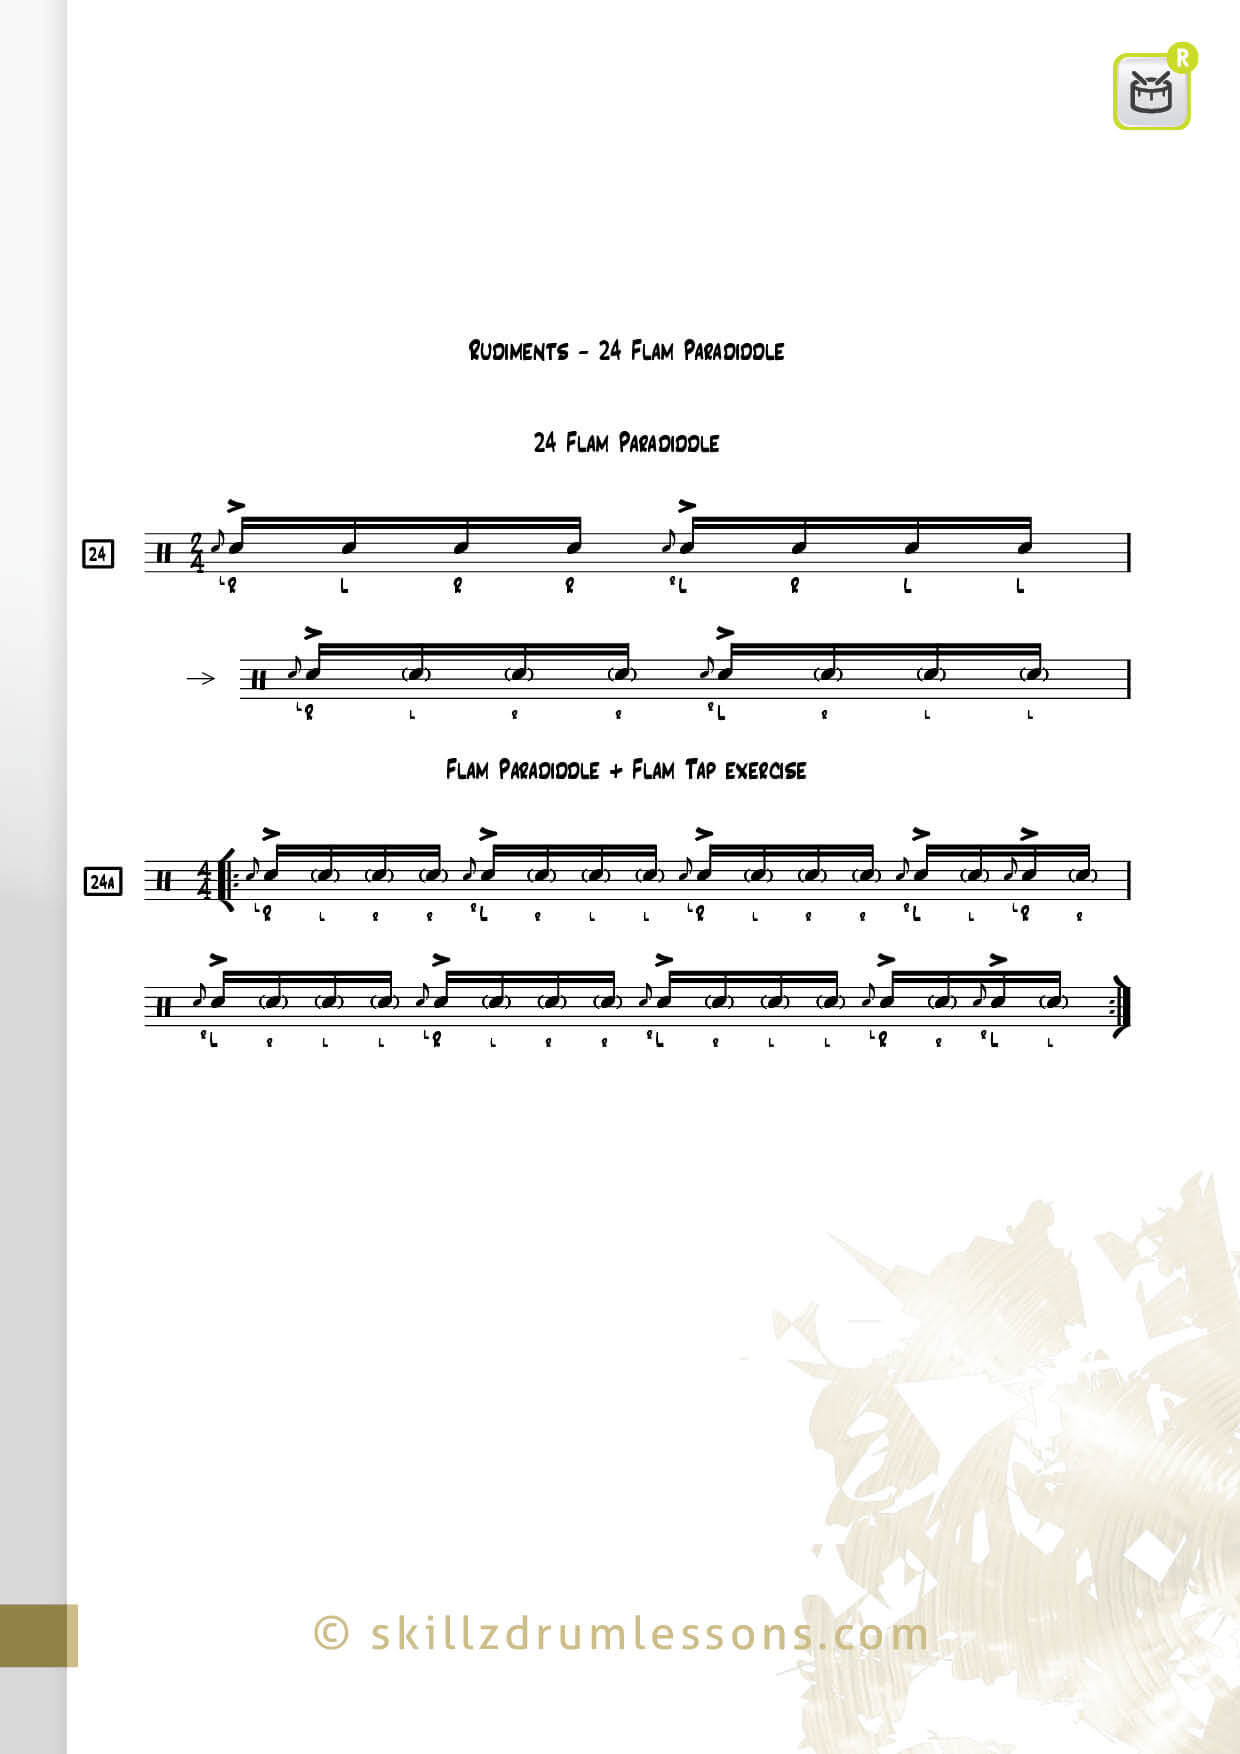 This is an image of the Official 40 Essential P.A.S. Rudiments #24 The Flam Paradiddle of Flamadiddle by Skillz Drum Lessons